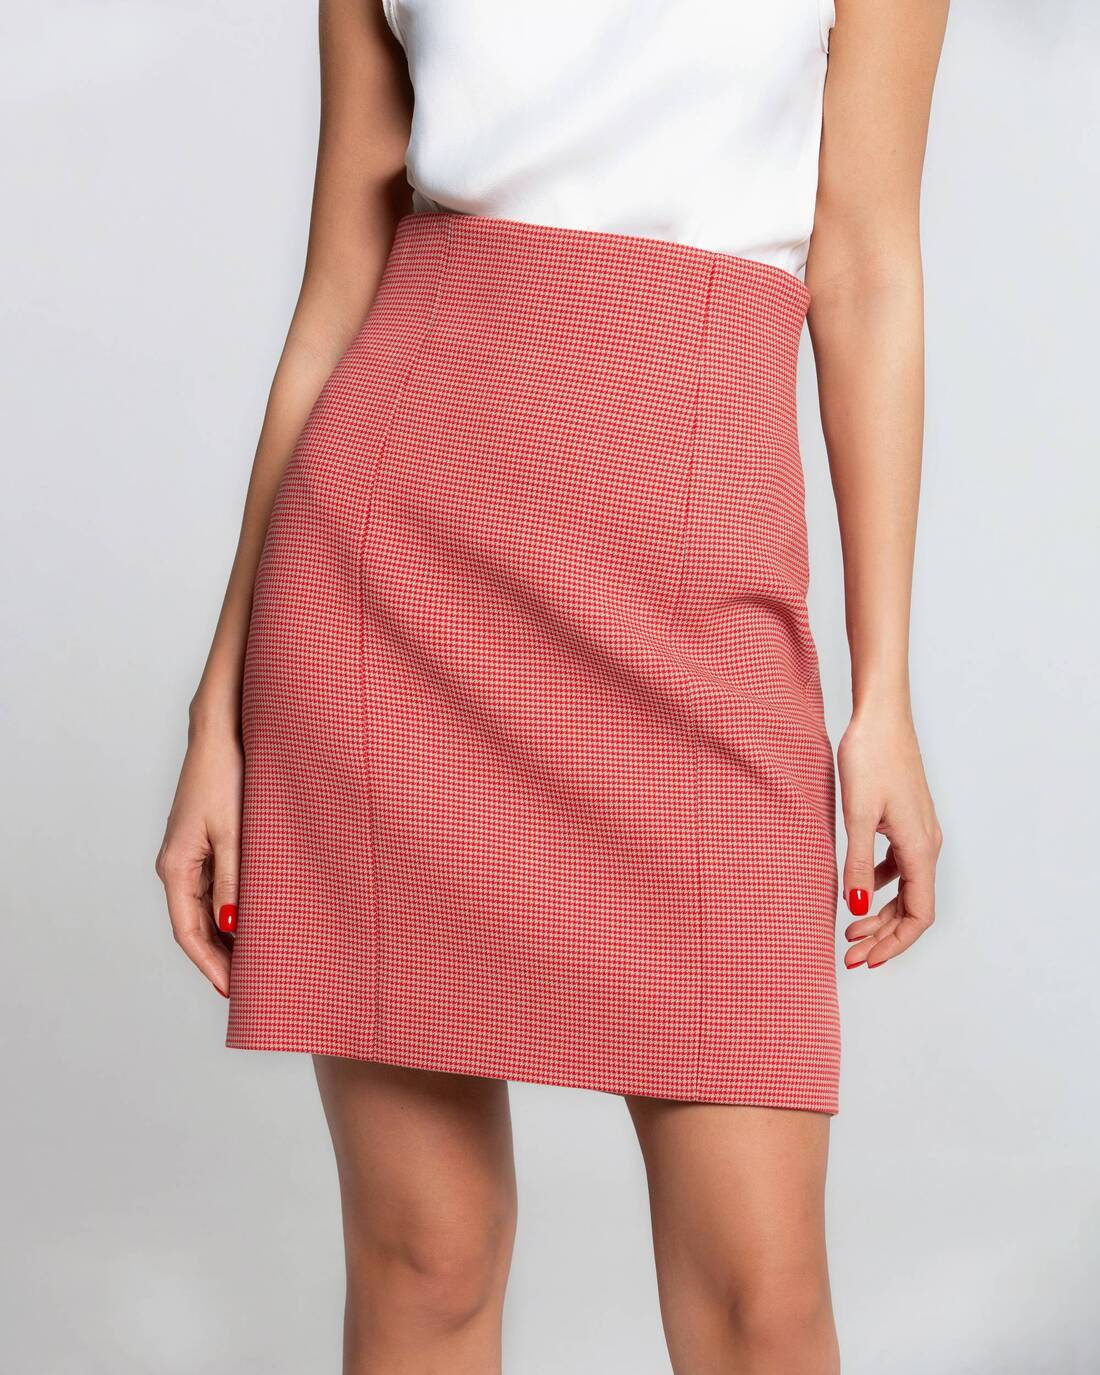 Mini skirt with relief details